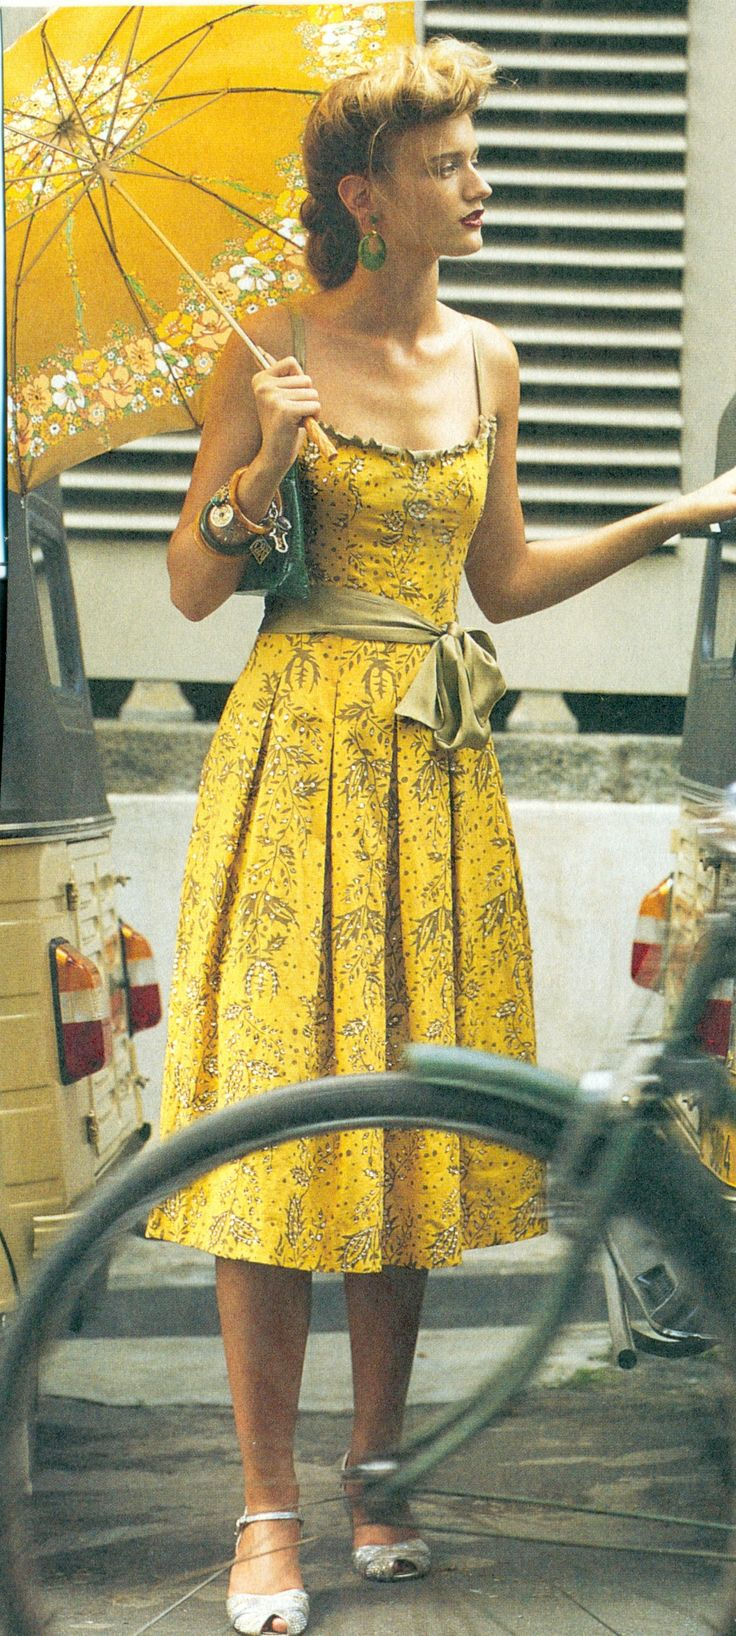 love this vintage yellow dress with pleats